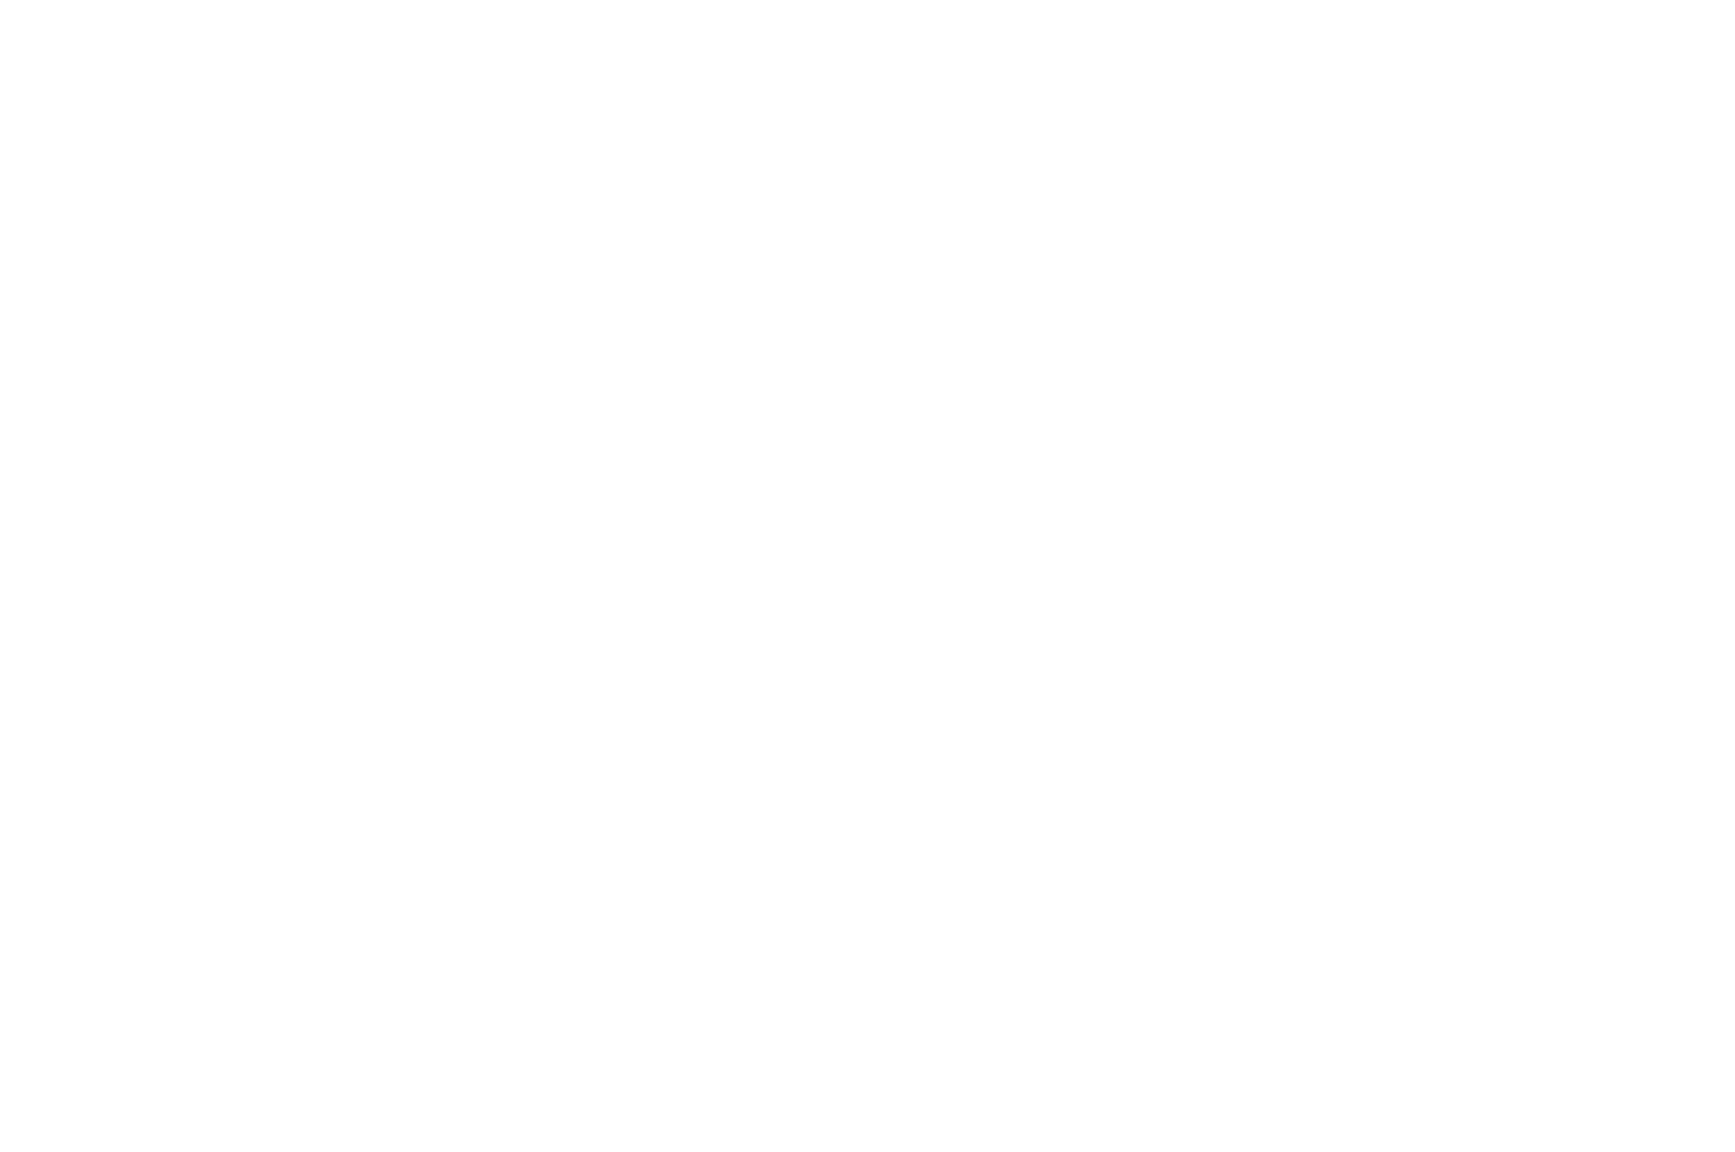 OFFICIAL COMPETITION - FANTASIA - 2018